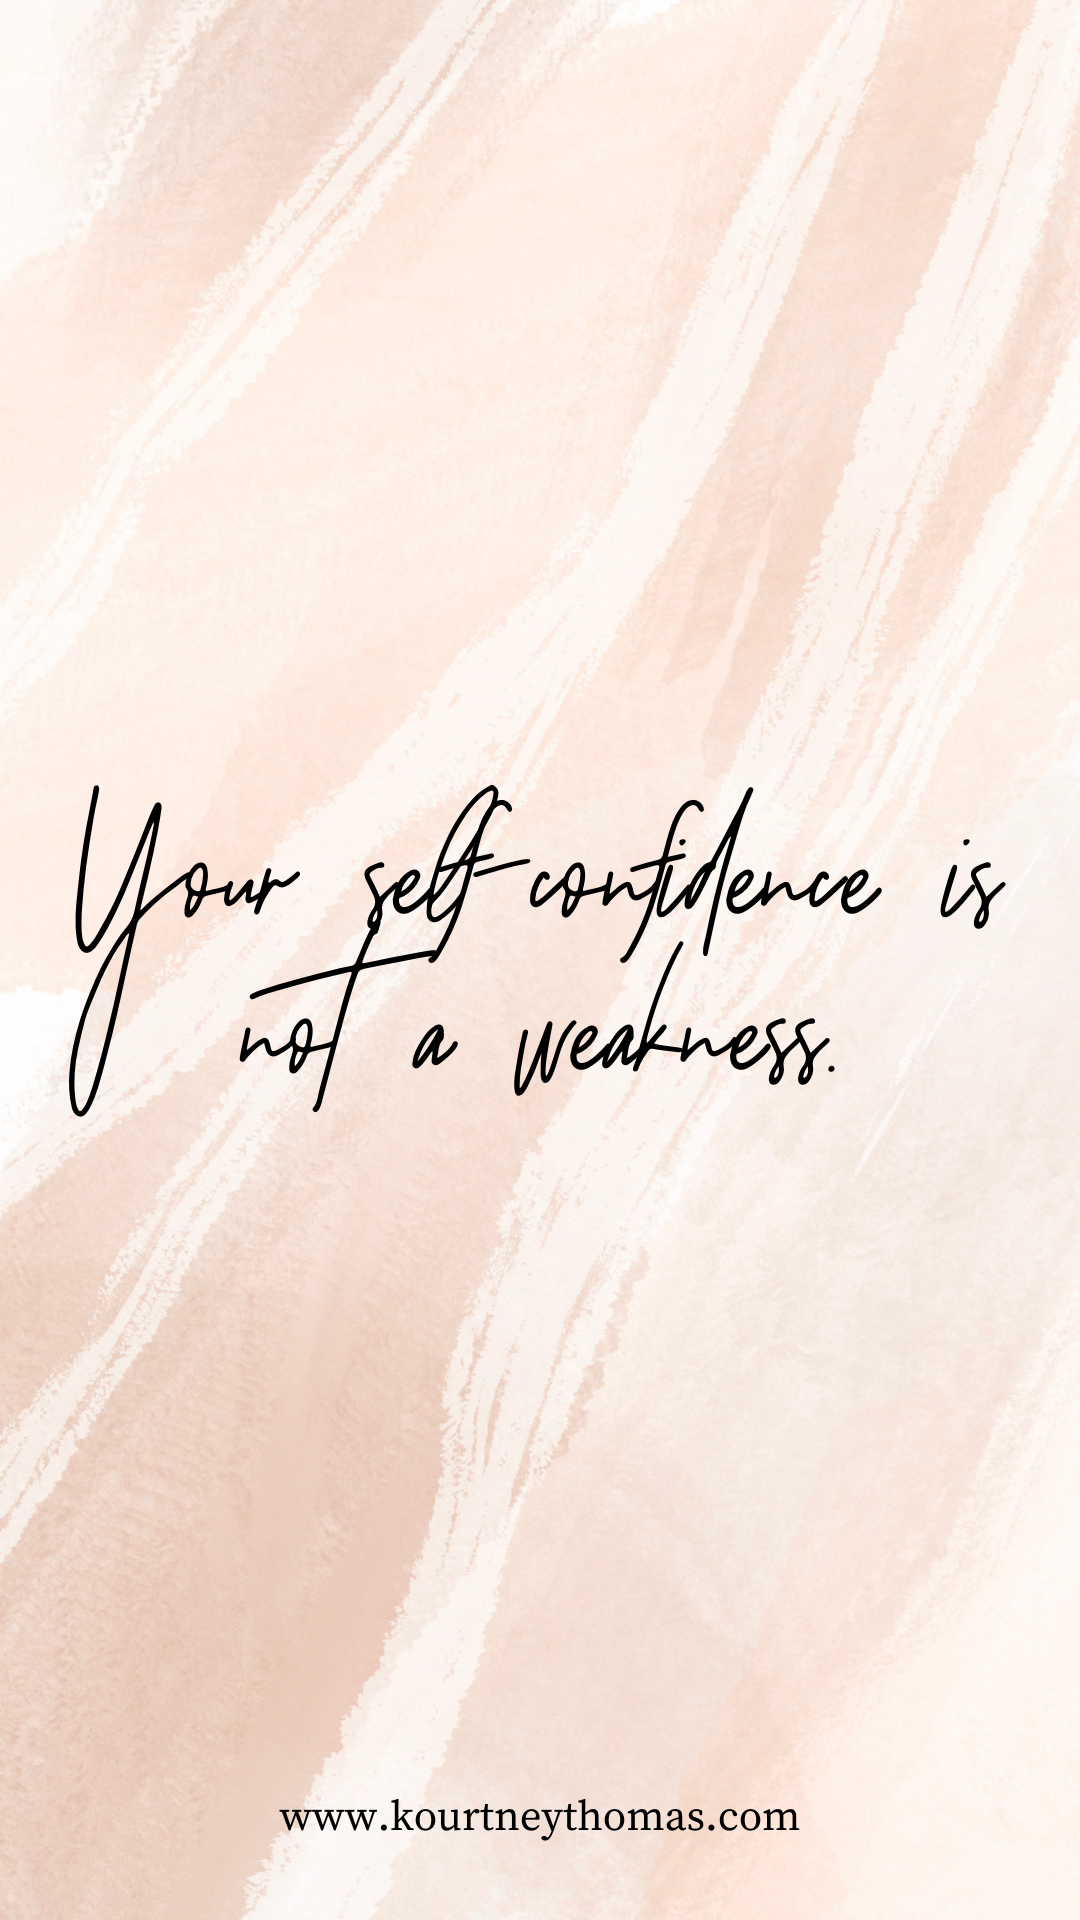 self confidence is not a weakness | kourtney thomas fitness life coach